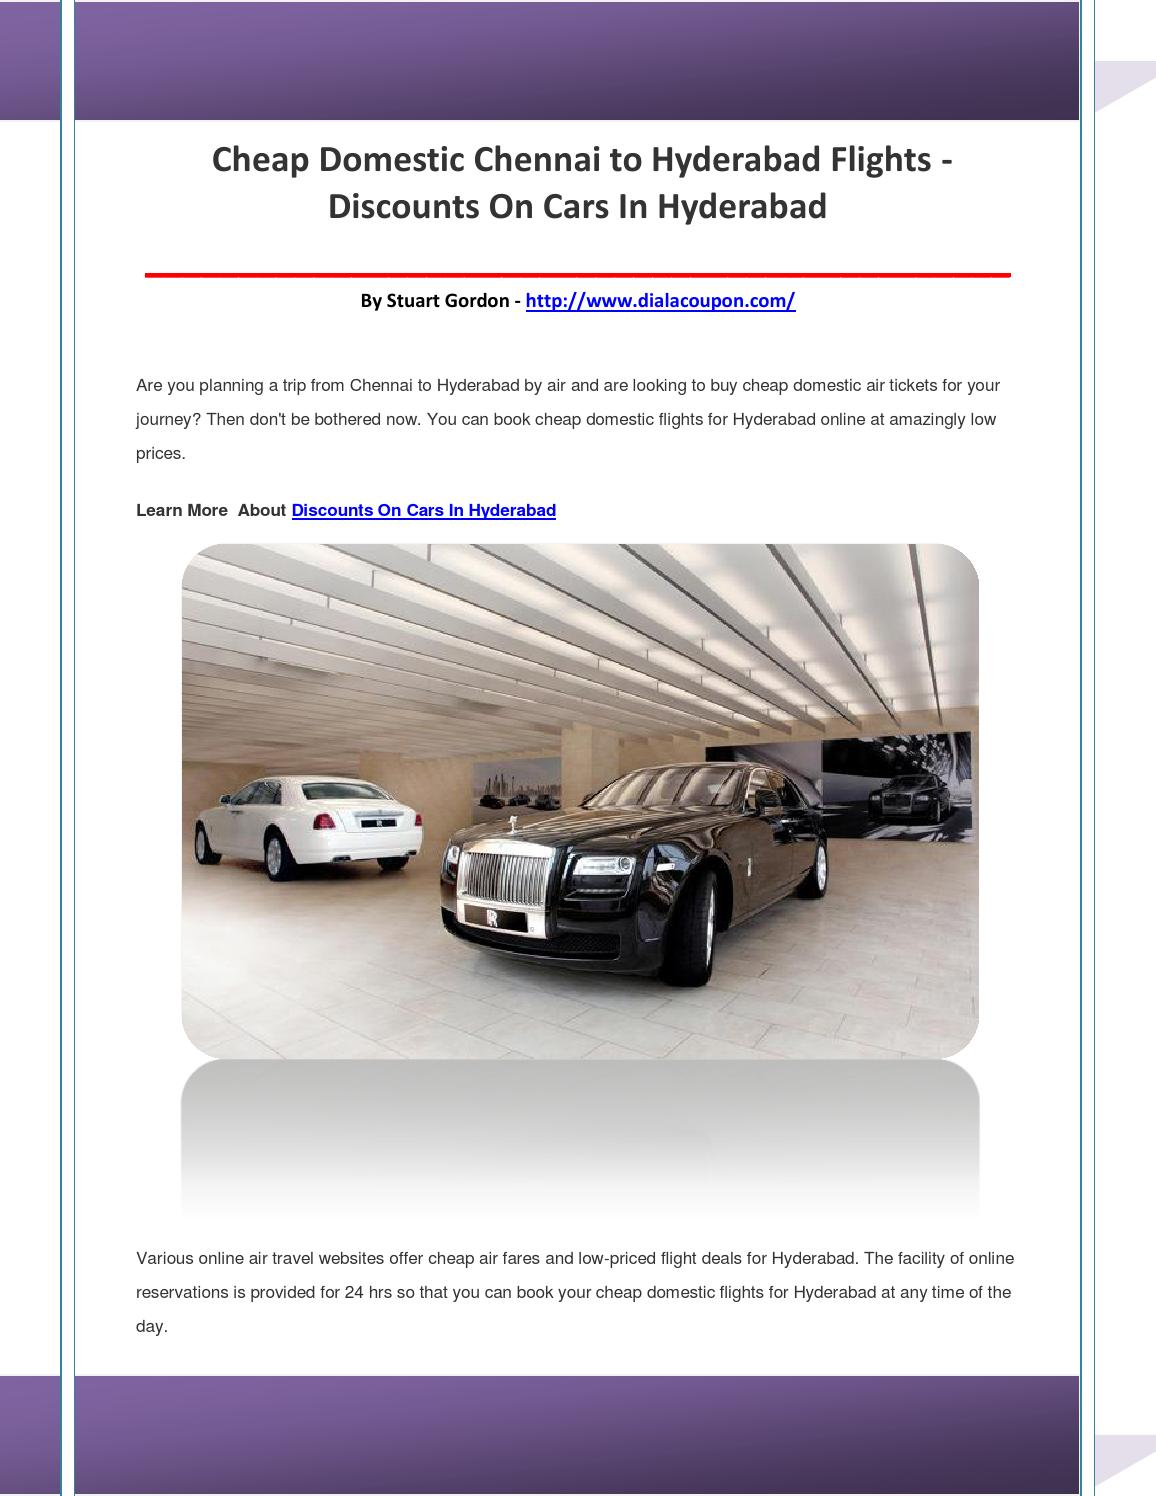 Discounts on cars in hyderabad by aohdglbnlo - issuu